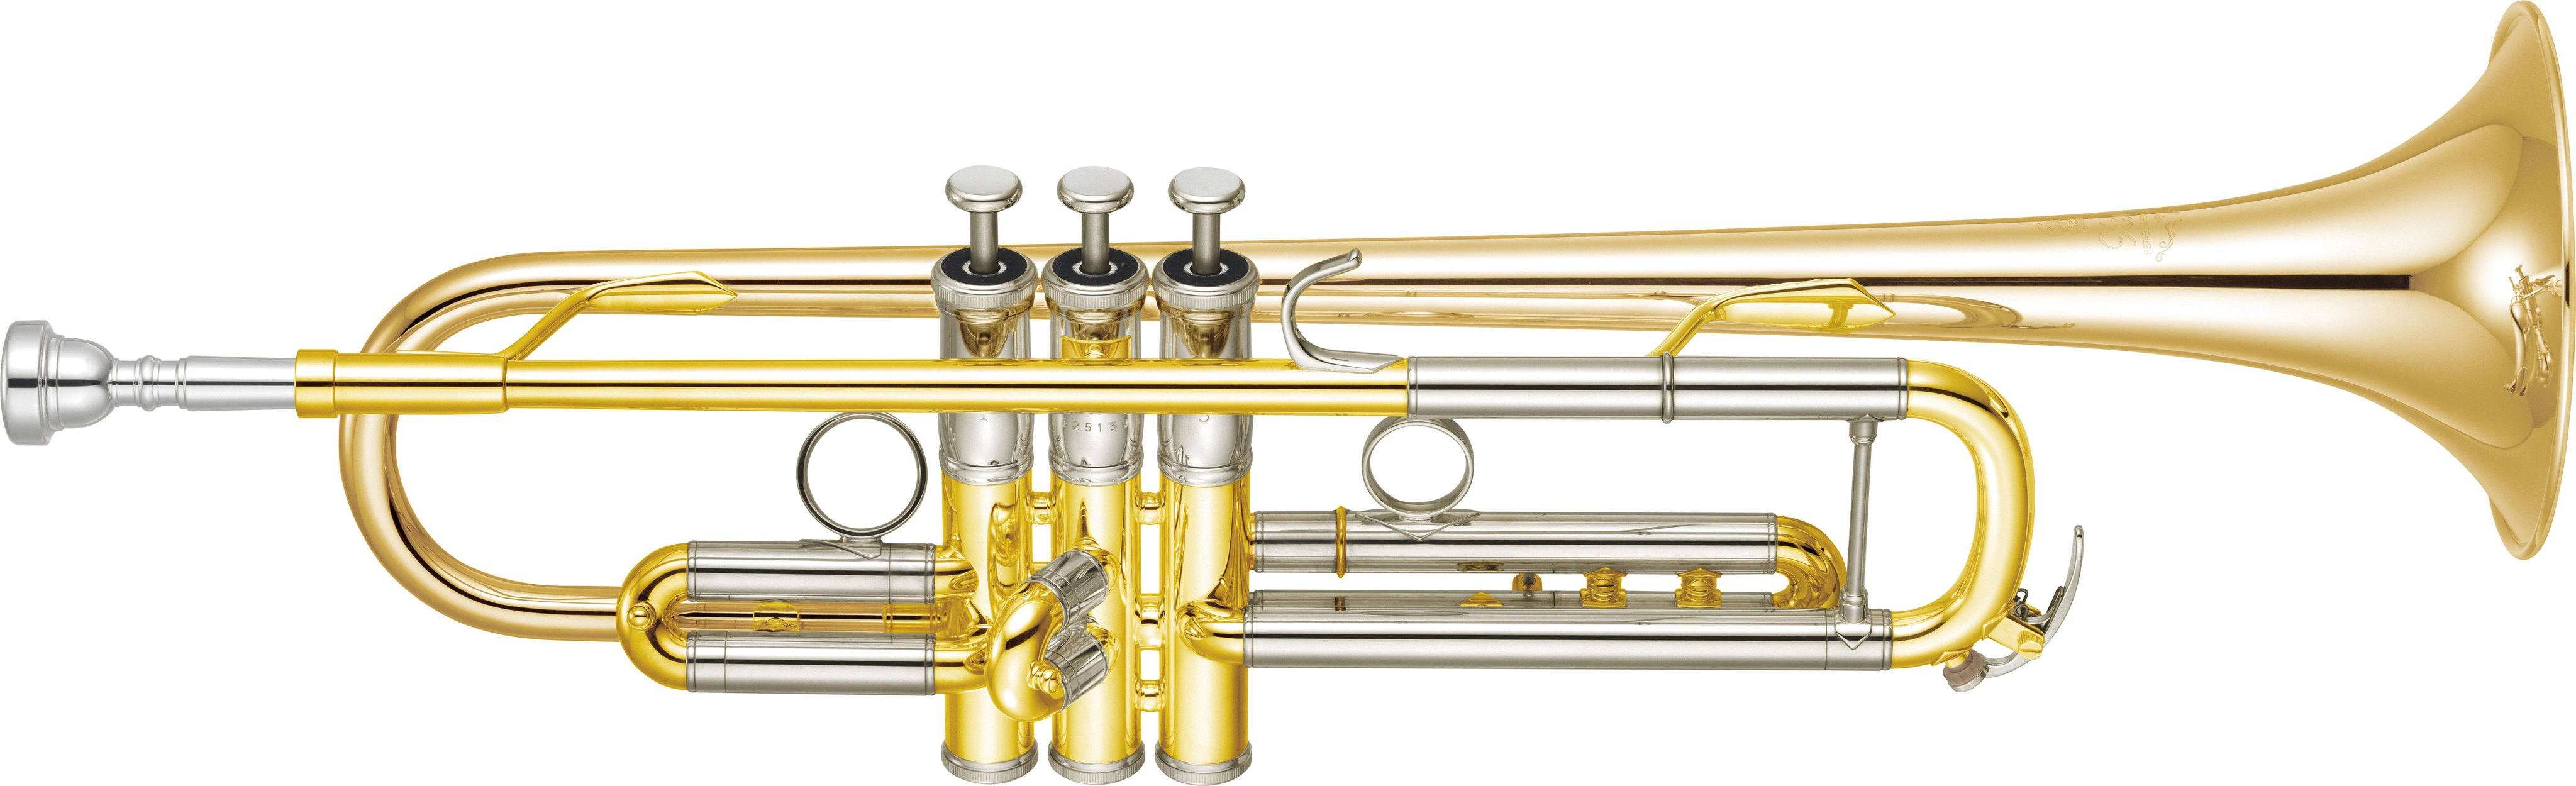 Ytr 8445s overview c trumpets trumpets brass for Yamaha electronic wind instrument